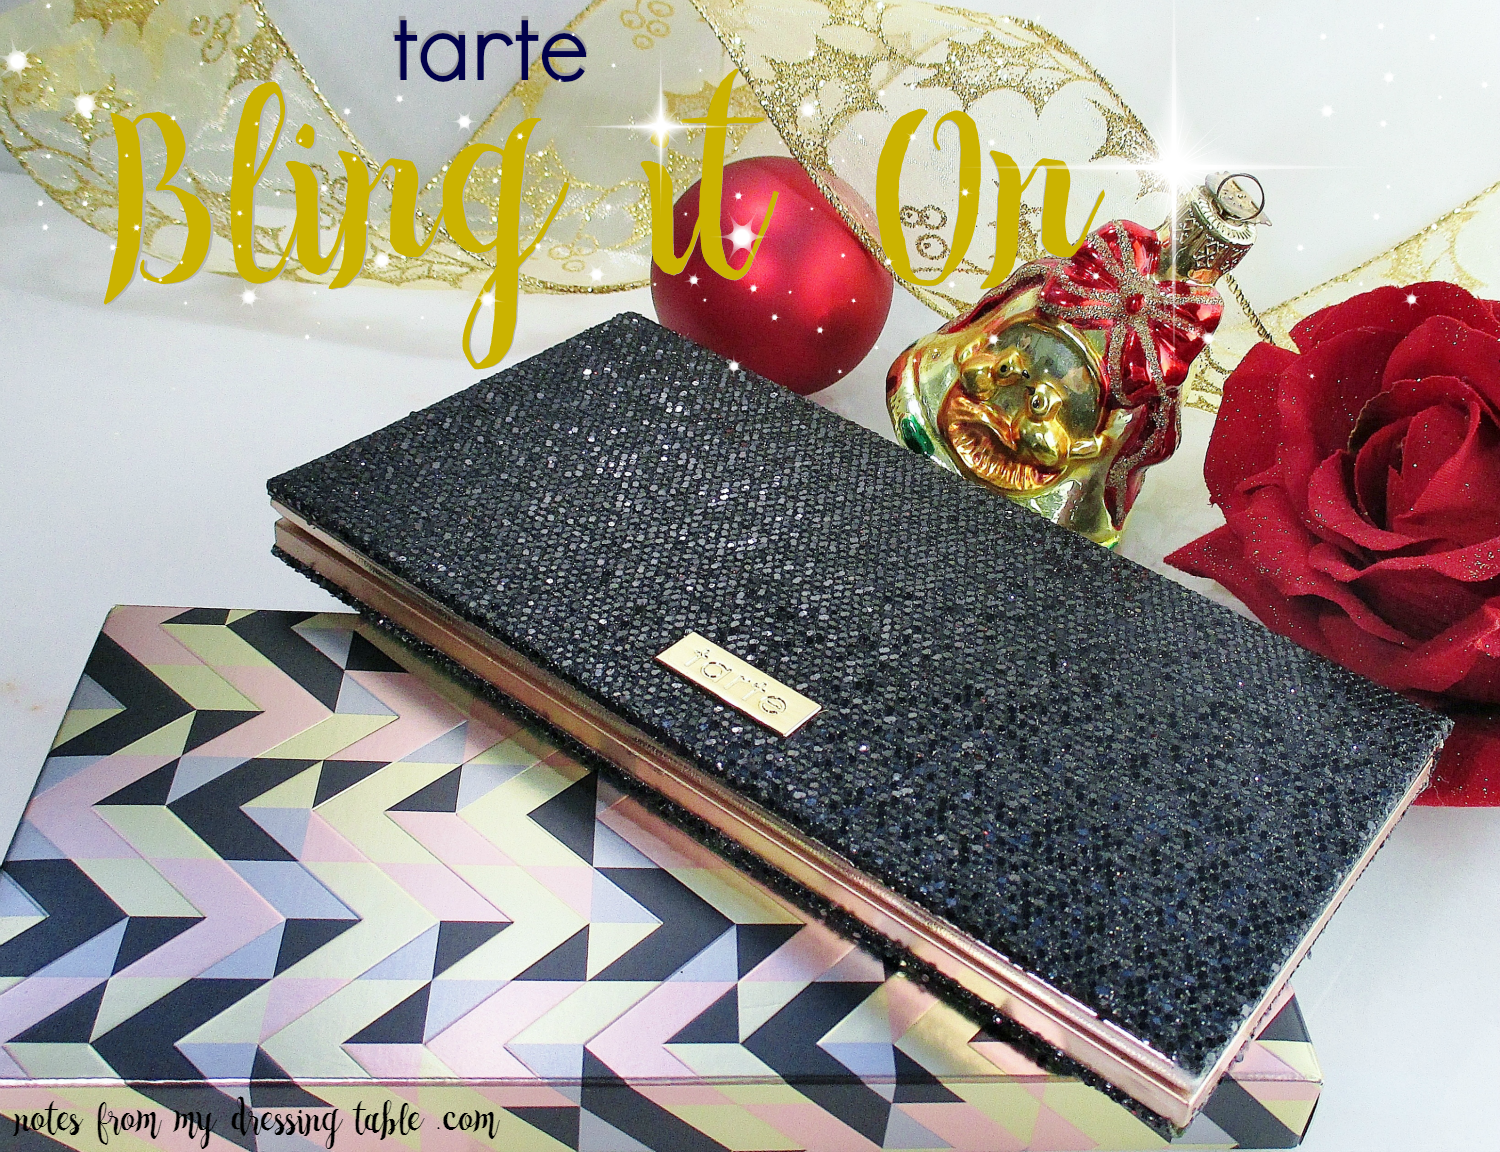 Tarte Bling it On Amazonian Clay Blush Palette notesfrommydressingtable.com